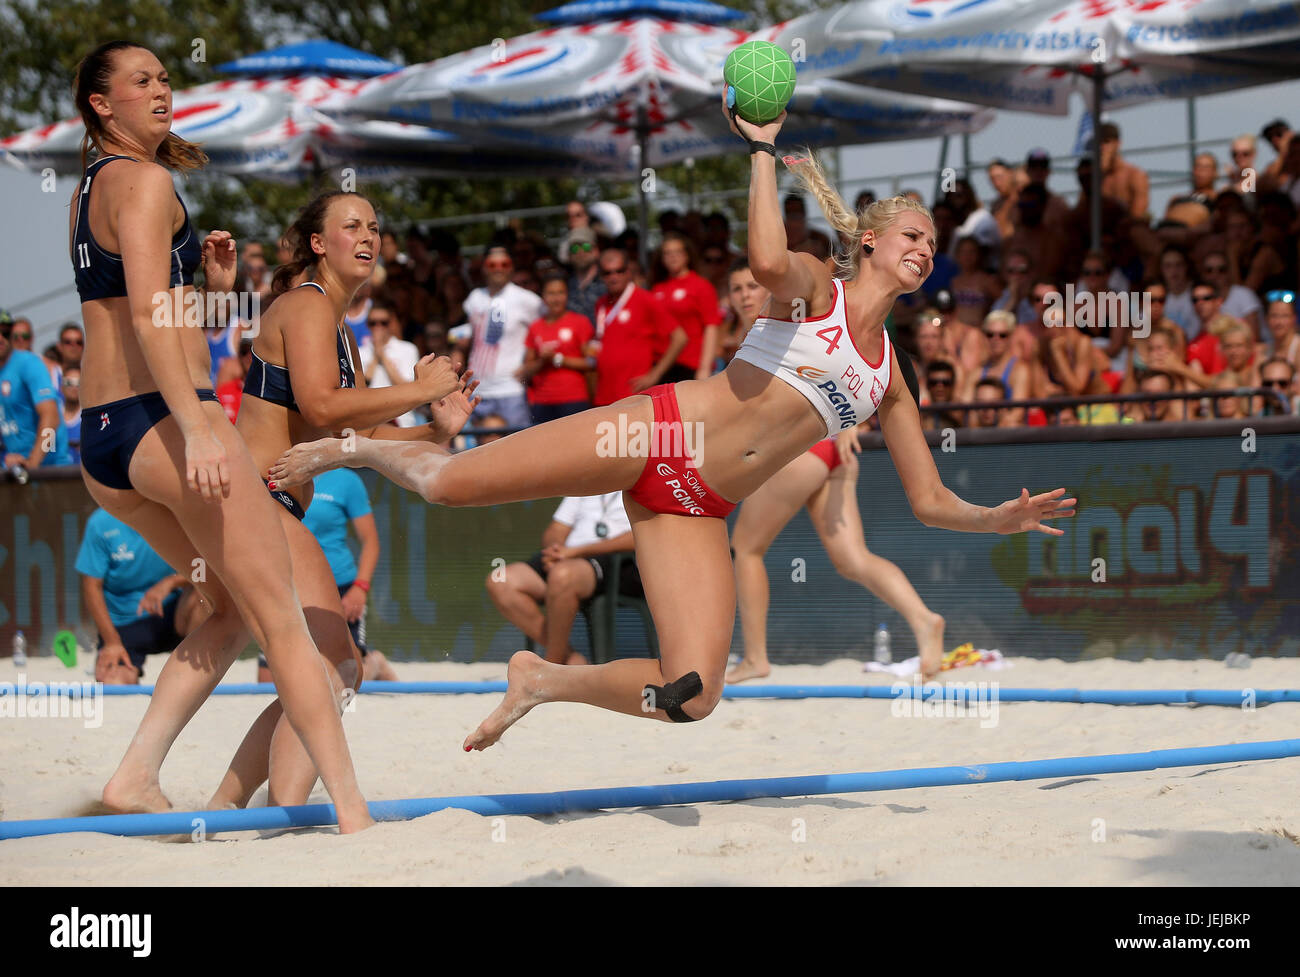 Zagreb, Croatia. 25th June, 2017. Paulina Sowa (R) of Poland competes during final match between Poland and Norway - Stock Image